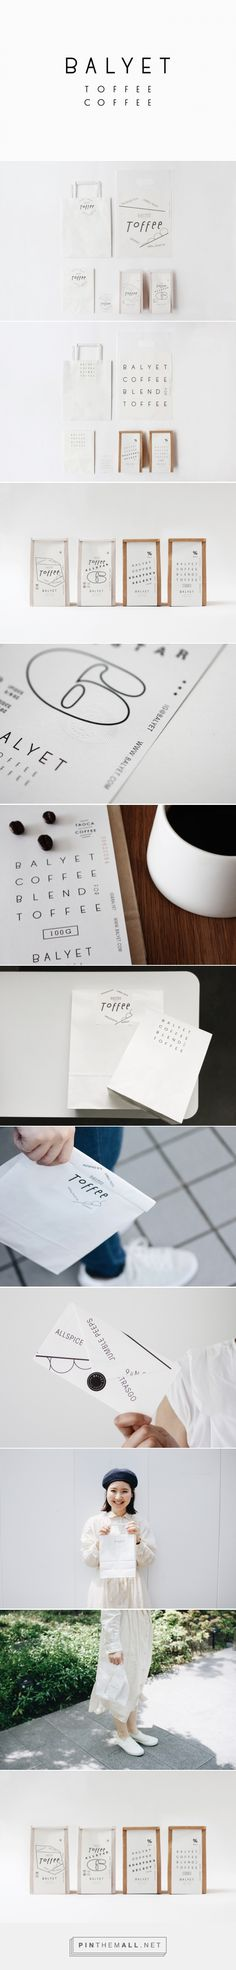 Complete visual identity including packaging design and stationery for a modern, simplistic coffee brand. Minimalism pairs with an organic, natural touch for a hipster branding board and logo design. Brand Identity Design, Corporate Design, Branding Design, Logo Design, Web Design, Layout Design, Brand Packaging, Packaging Design, Coffee Branding